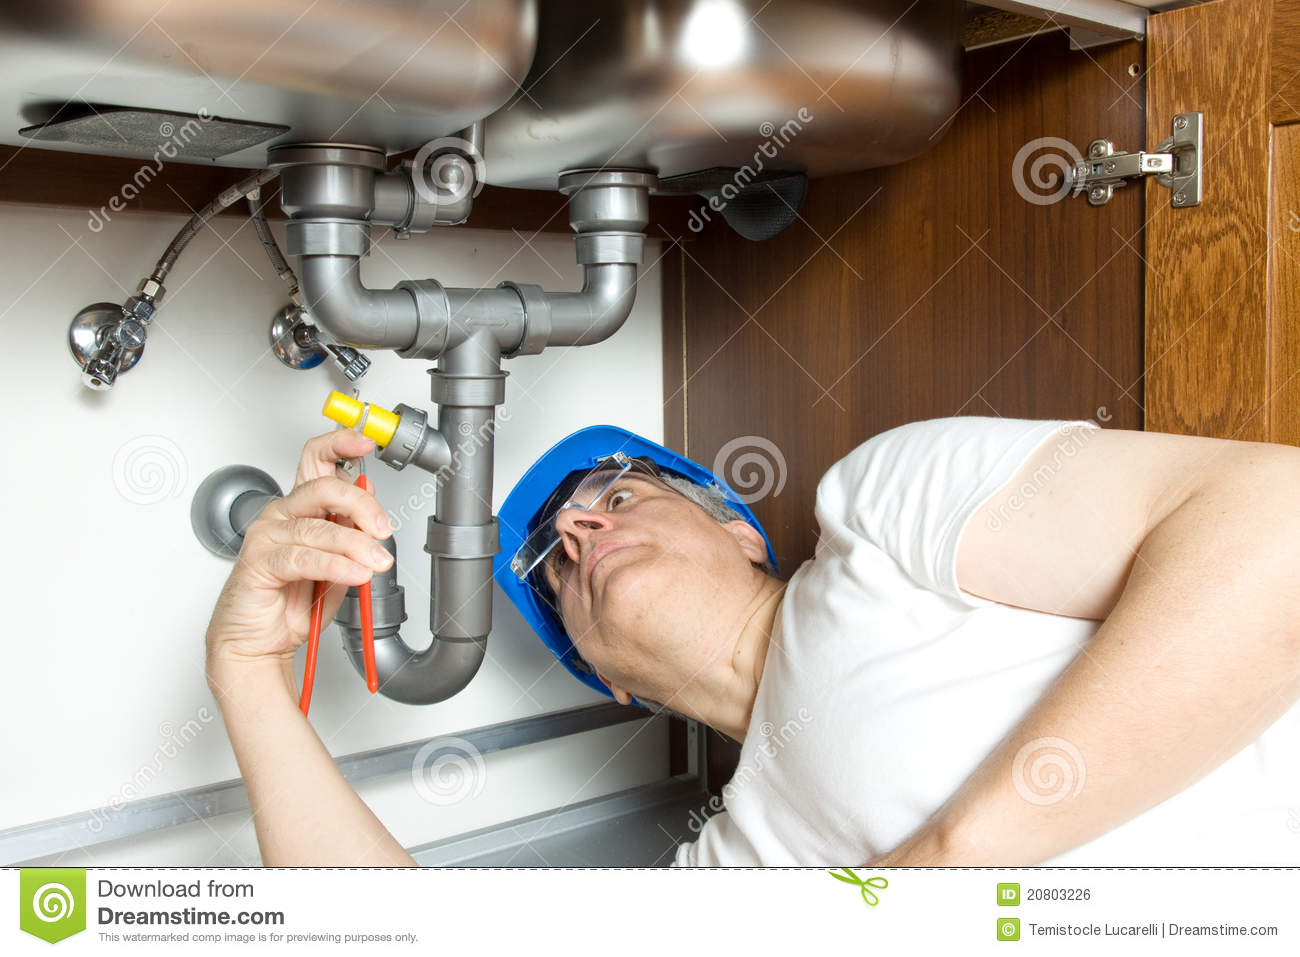 Plumber at work royalty free stock image image 20803226 for How does plumbing work